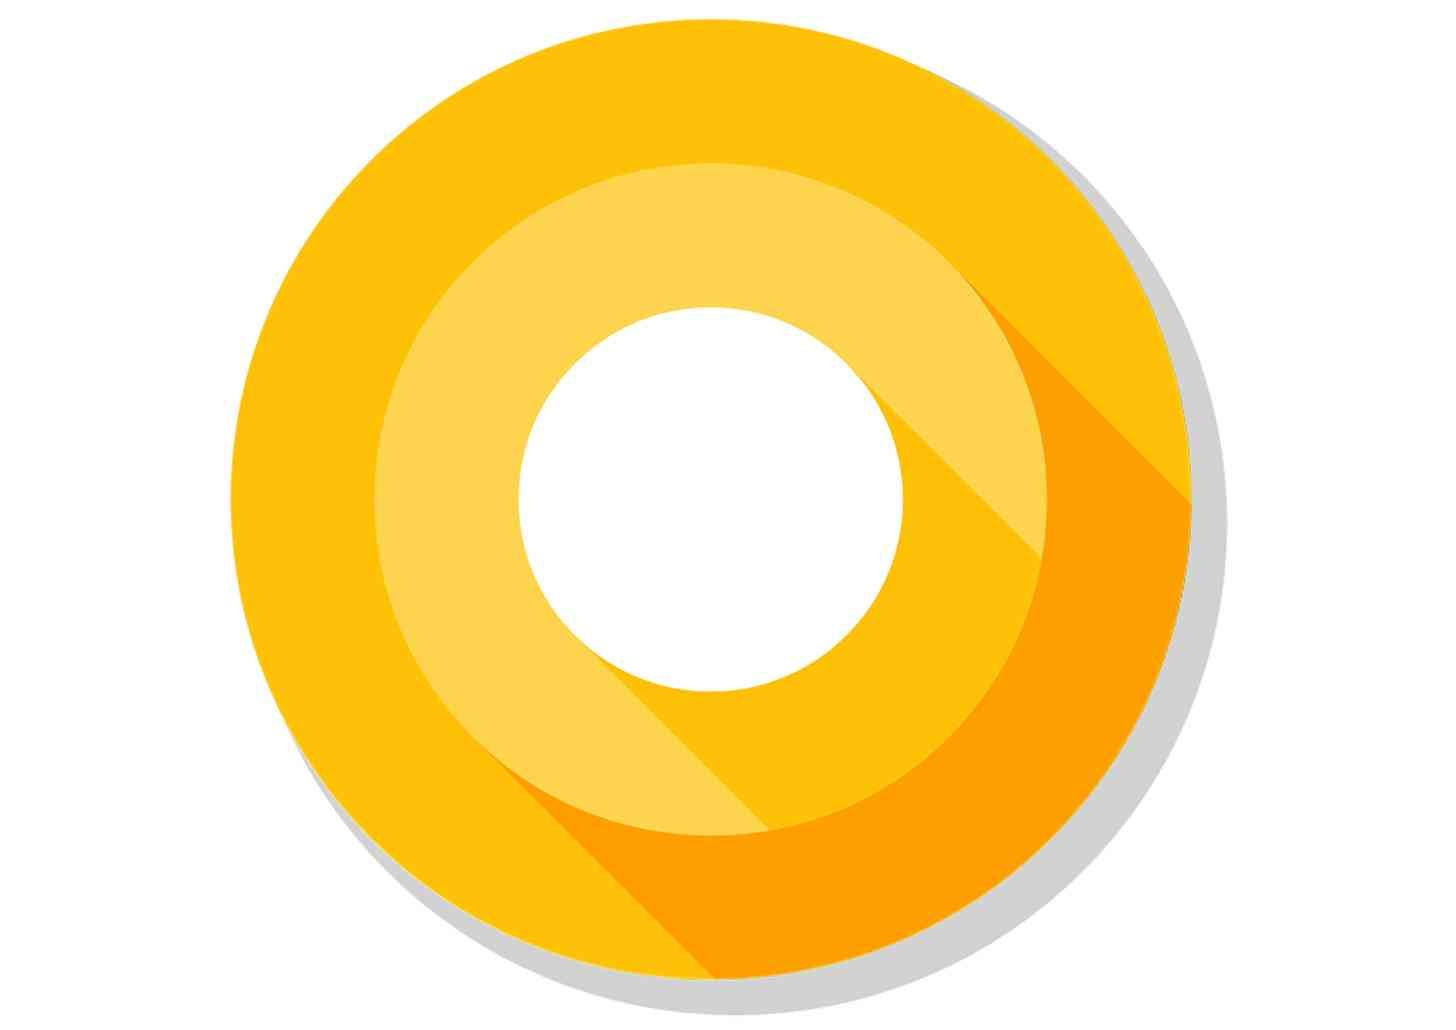 Android O Developer Prevew